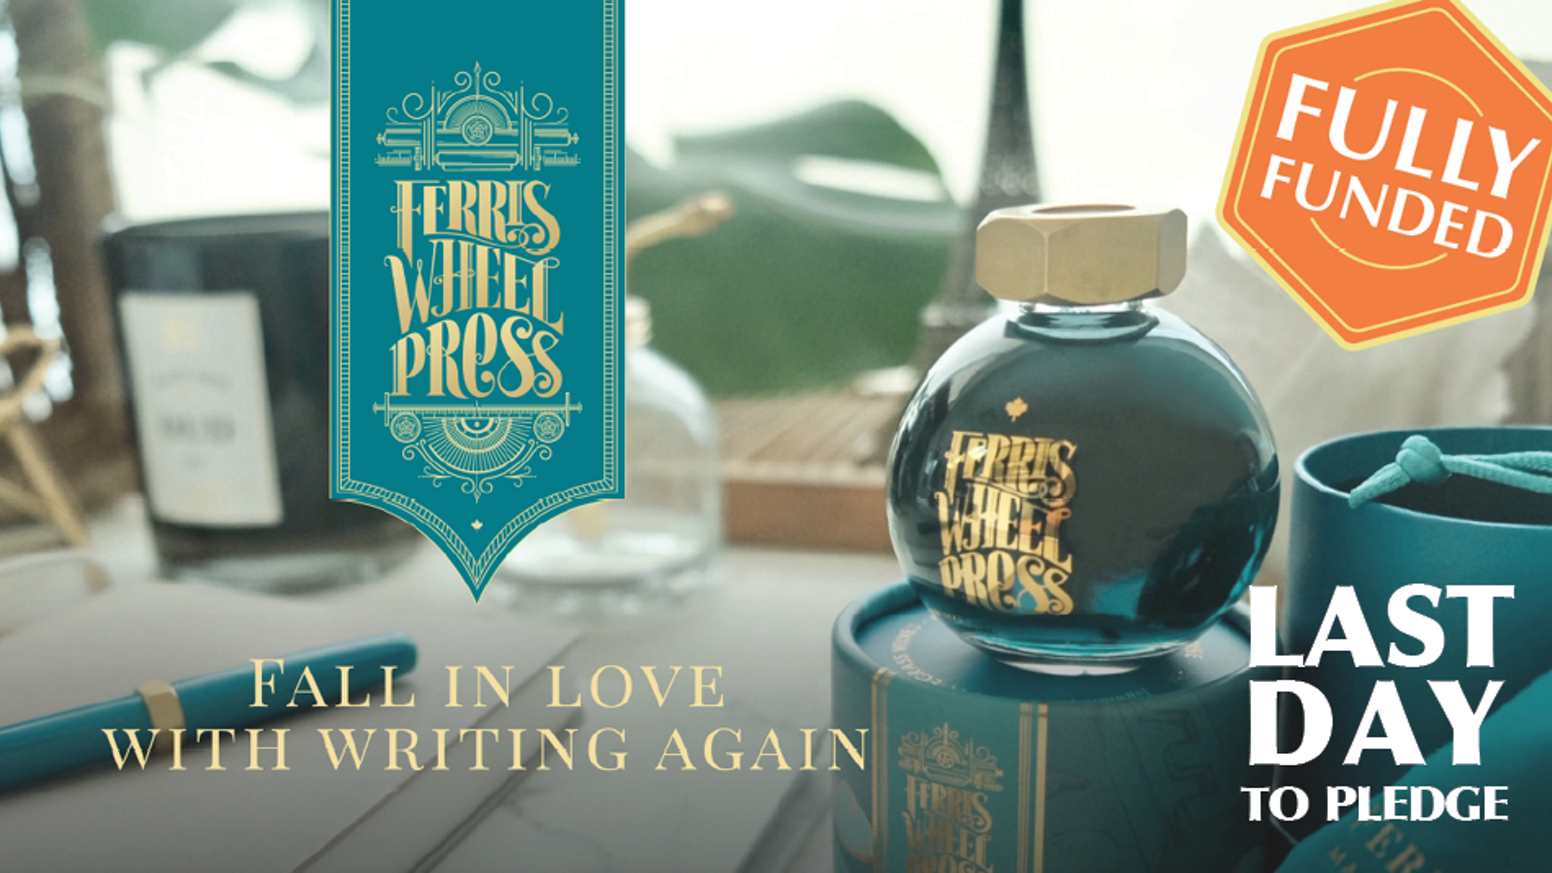 Fall in love with writing again, with our new and inspiring collection of fountain pen inks. With the generous support of the Kickstarter community, our original fountain pen inks are now permanently available on our website at shop.ferriswheelpress.com.